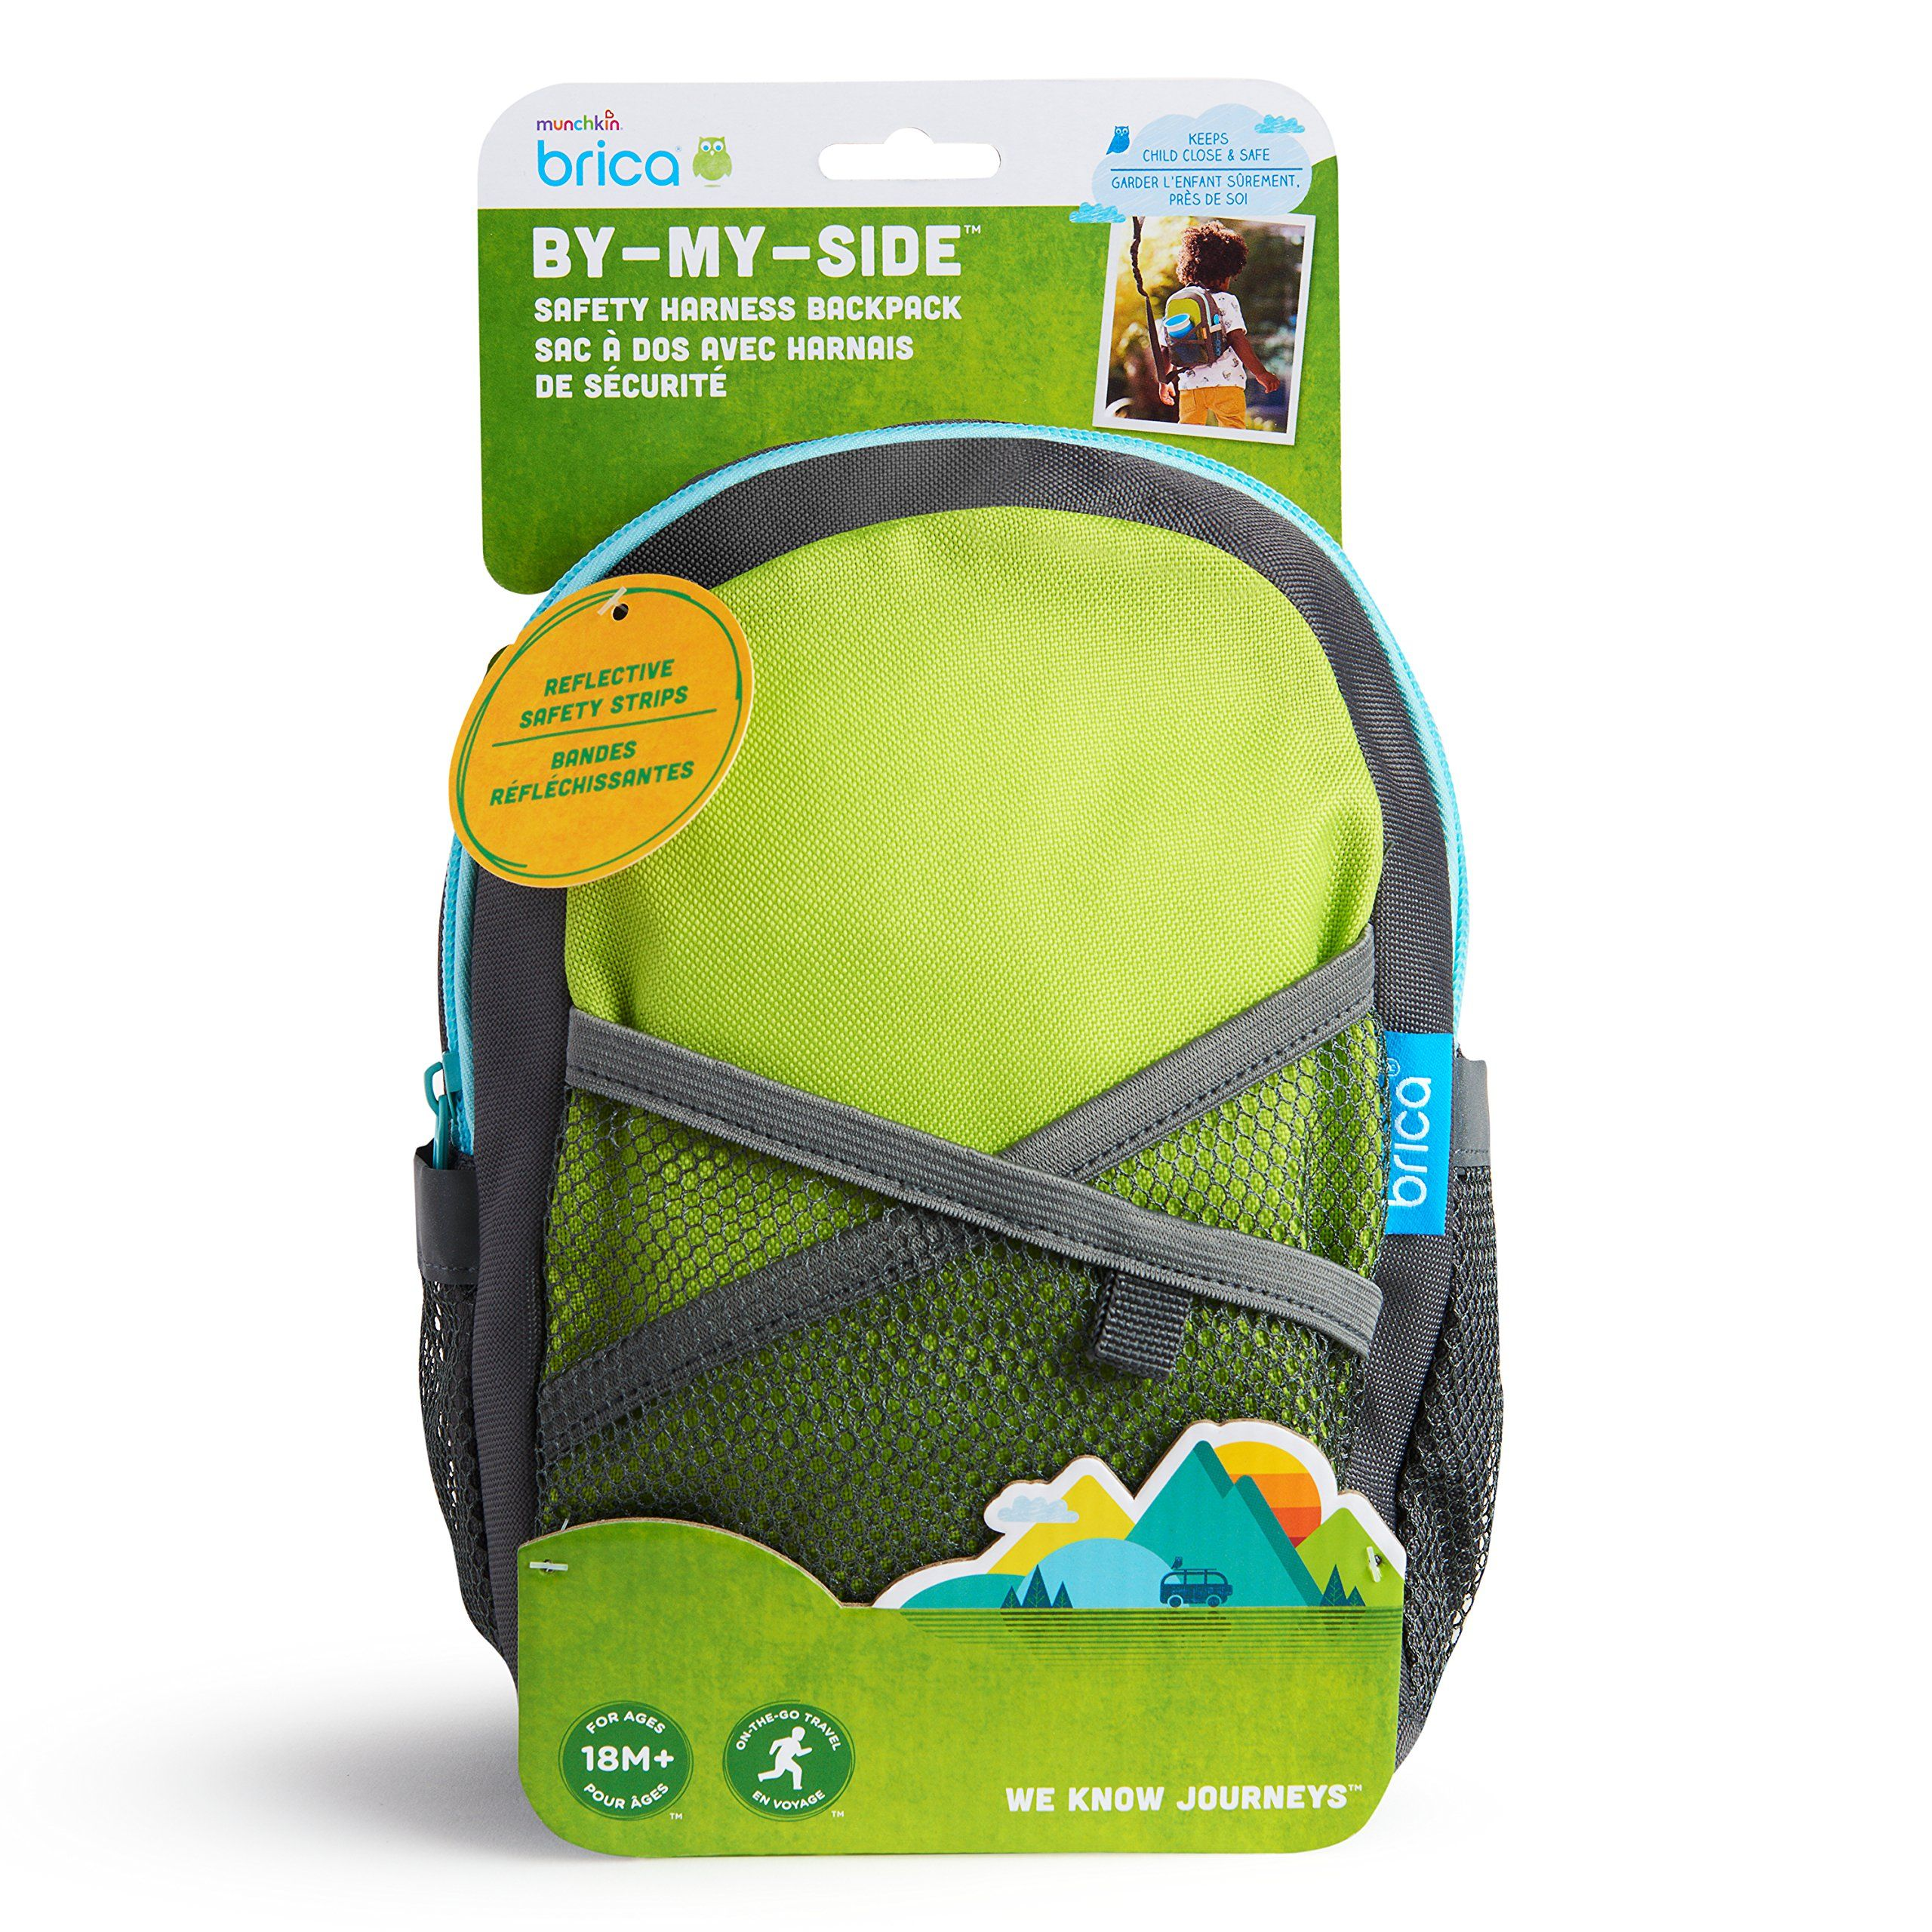 BricaByMySide Safety Harness Backpack Green/Blue See